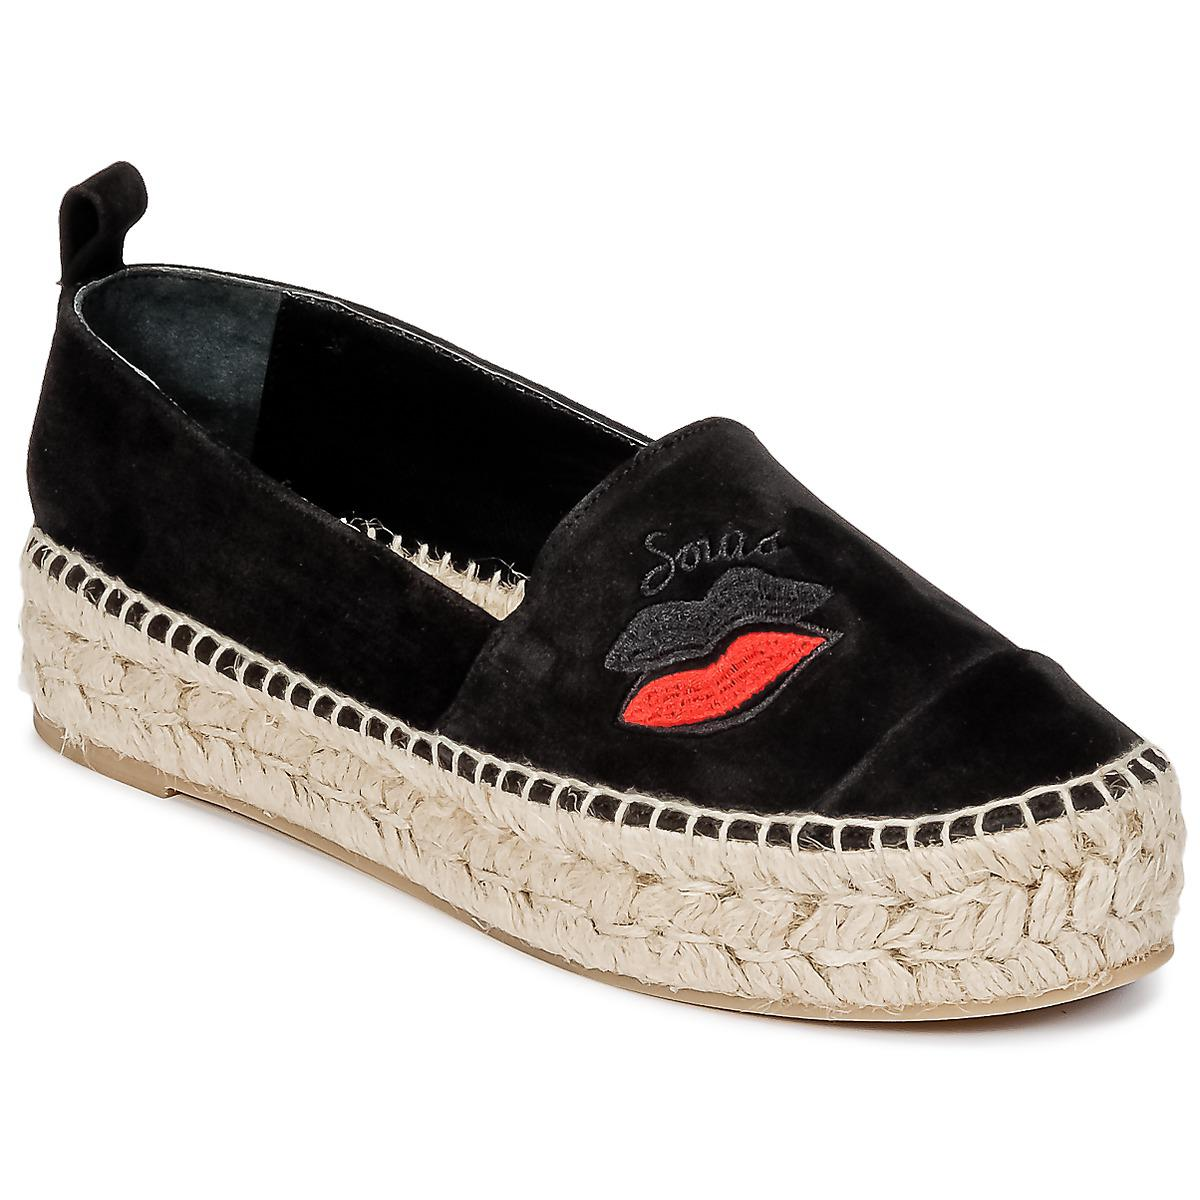 Sonia by Sonia Rykiel 676318 women's Casual Shoes in Limited Edition Cheap Shop Discount Geniue Stockist Sale Marketable Outlet Discounts dkRcBdzj